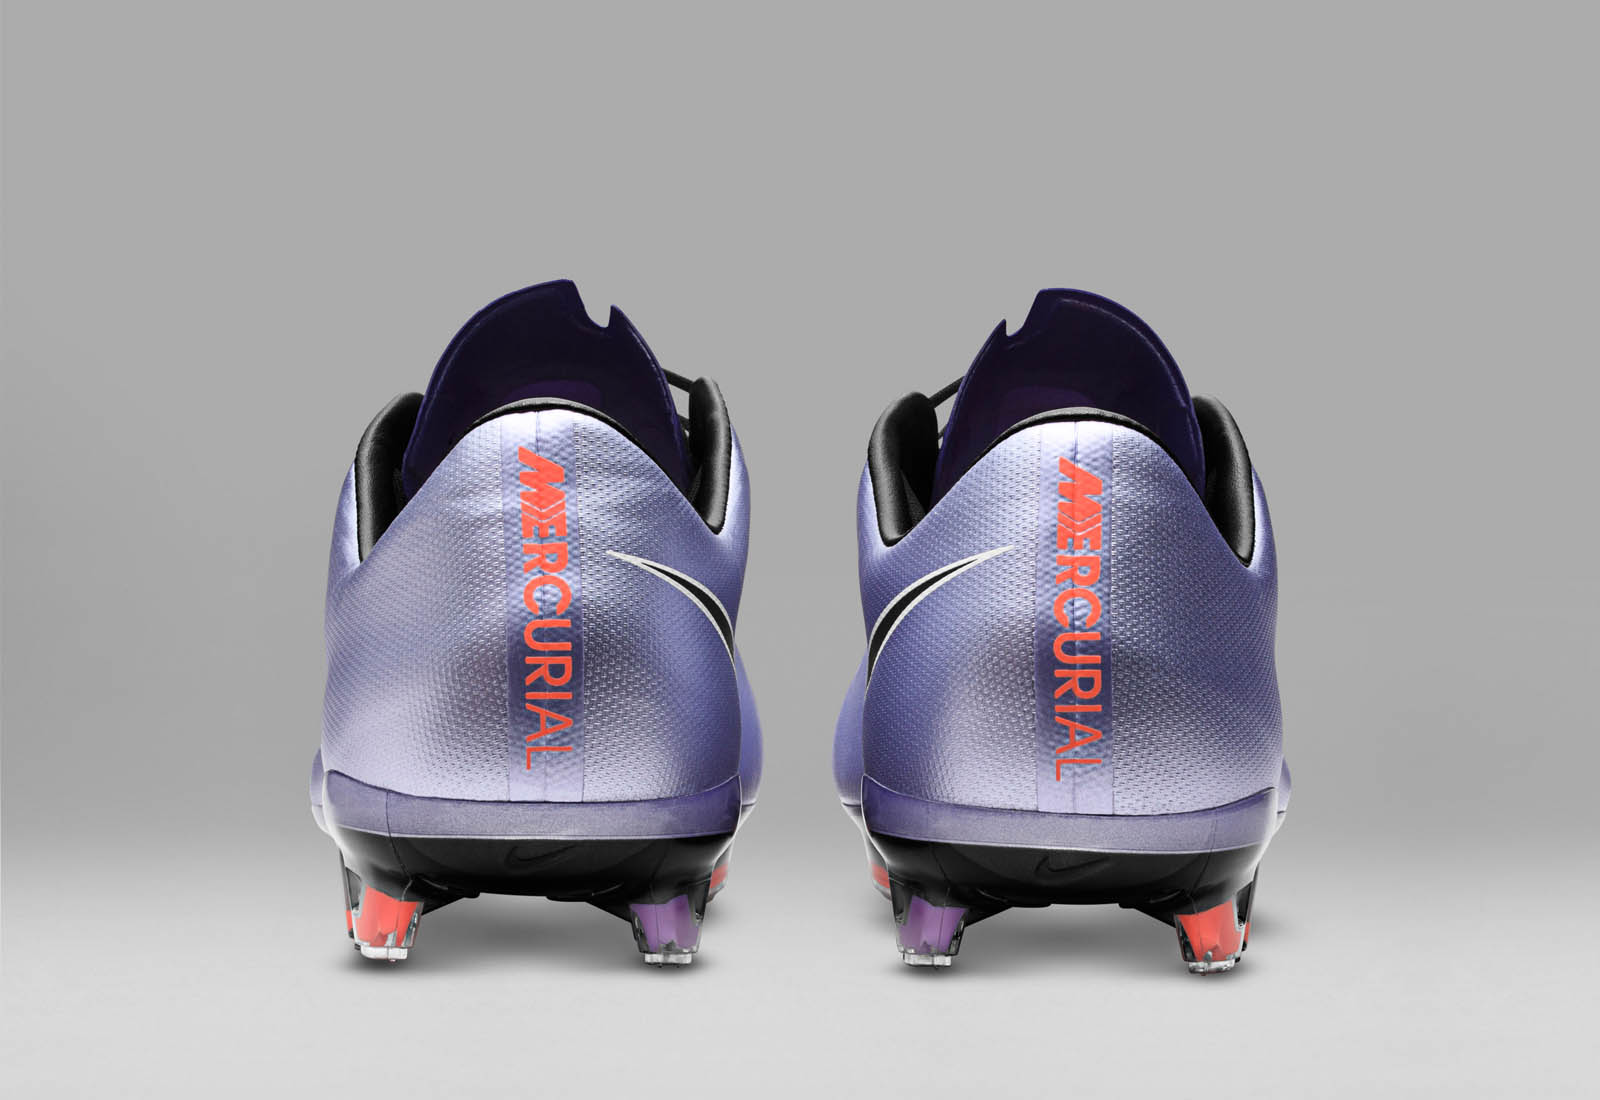 newest 33849 0804f Urban Lilac Nike Mercurial Vapor X 2016 Boots Released - Foo